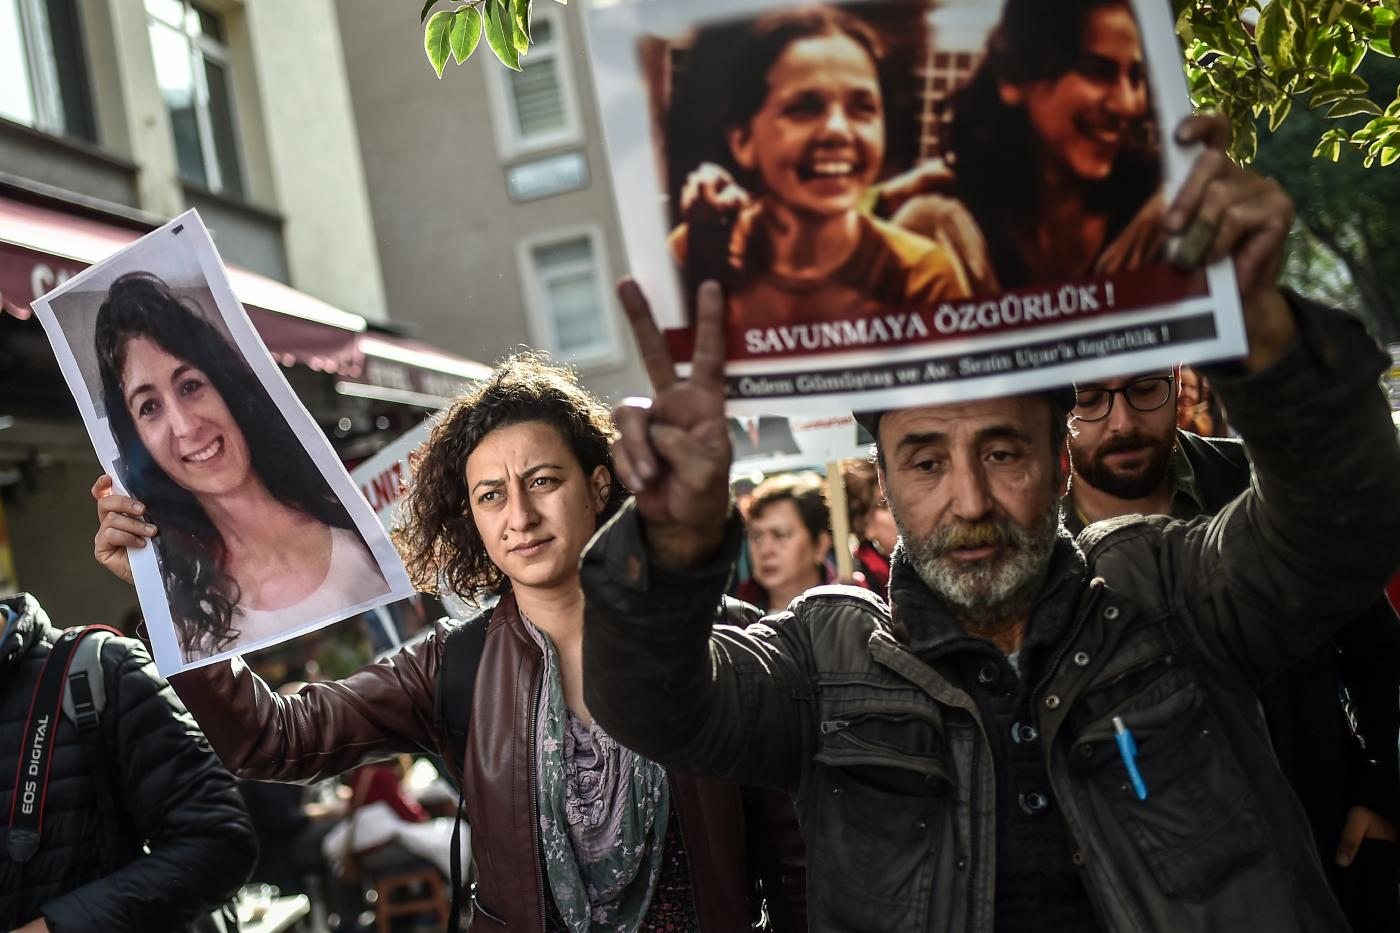 Turkey, Saudi Arabia and Egypt Among Worst Jailers of Journalists, Report Says